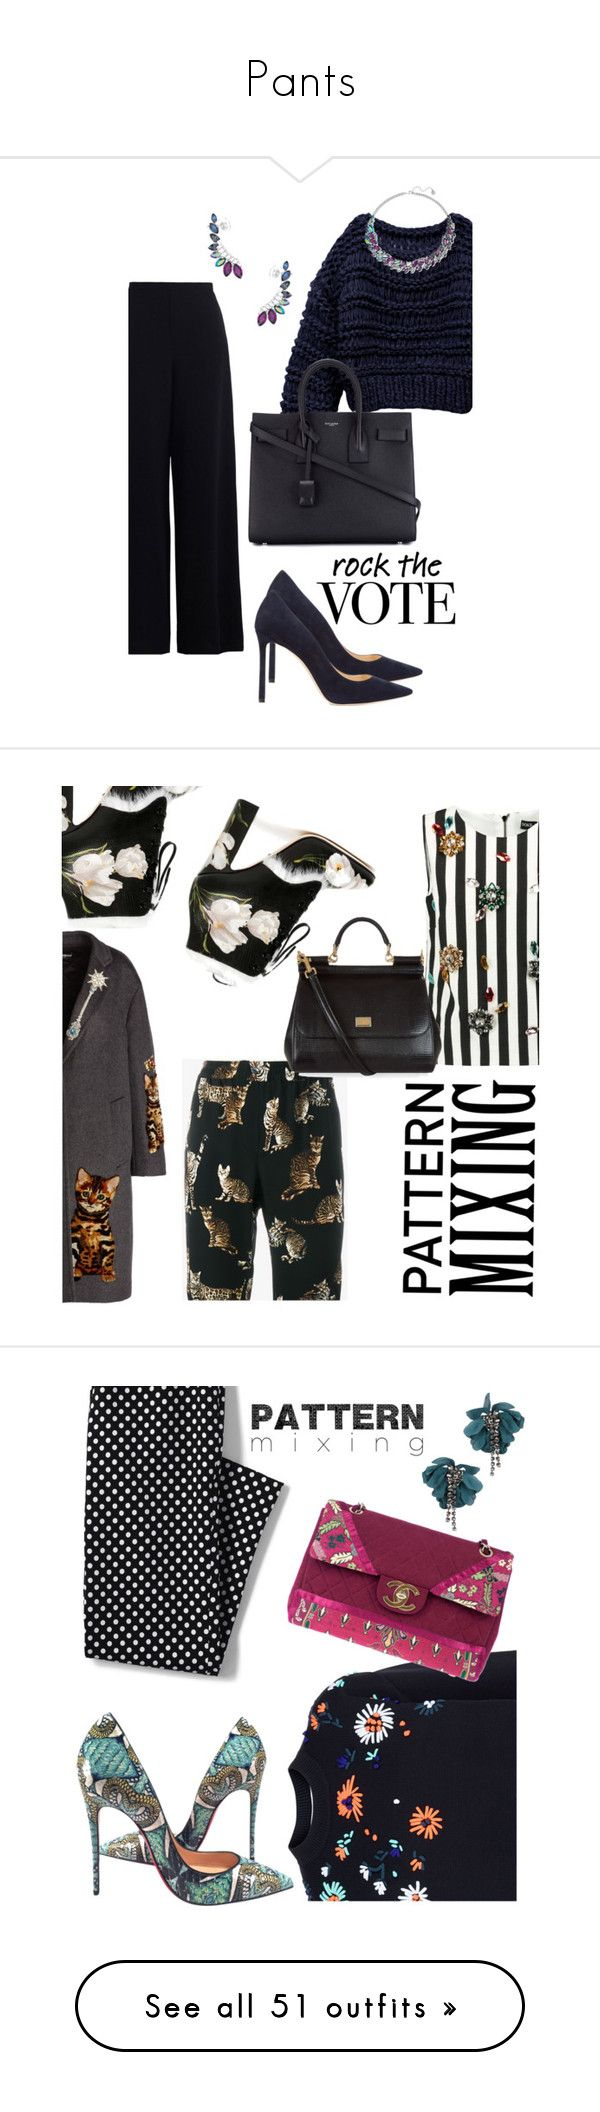 """""""Pants"""" by sara12alexandra ❤ liked on Polyvore featuring Zimmermann, Jimmy Choo, Yves Saint Laurent, Swarovski, Dolce&Gabbana, Victoria, Victoria Beckham, Christian Louboutin, Chanel, Lands' End and Lanvin"""